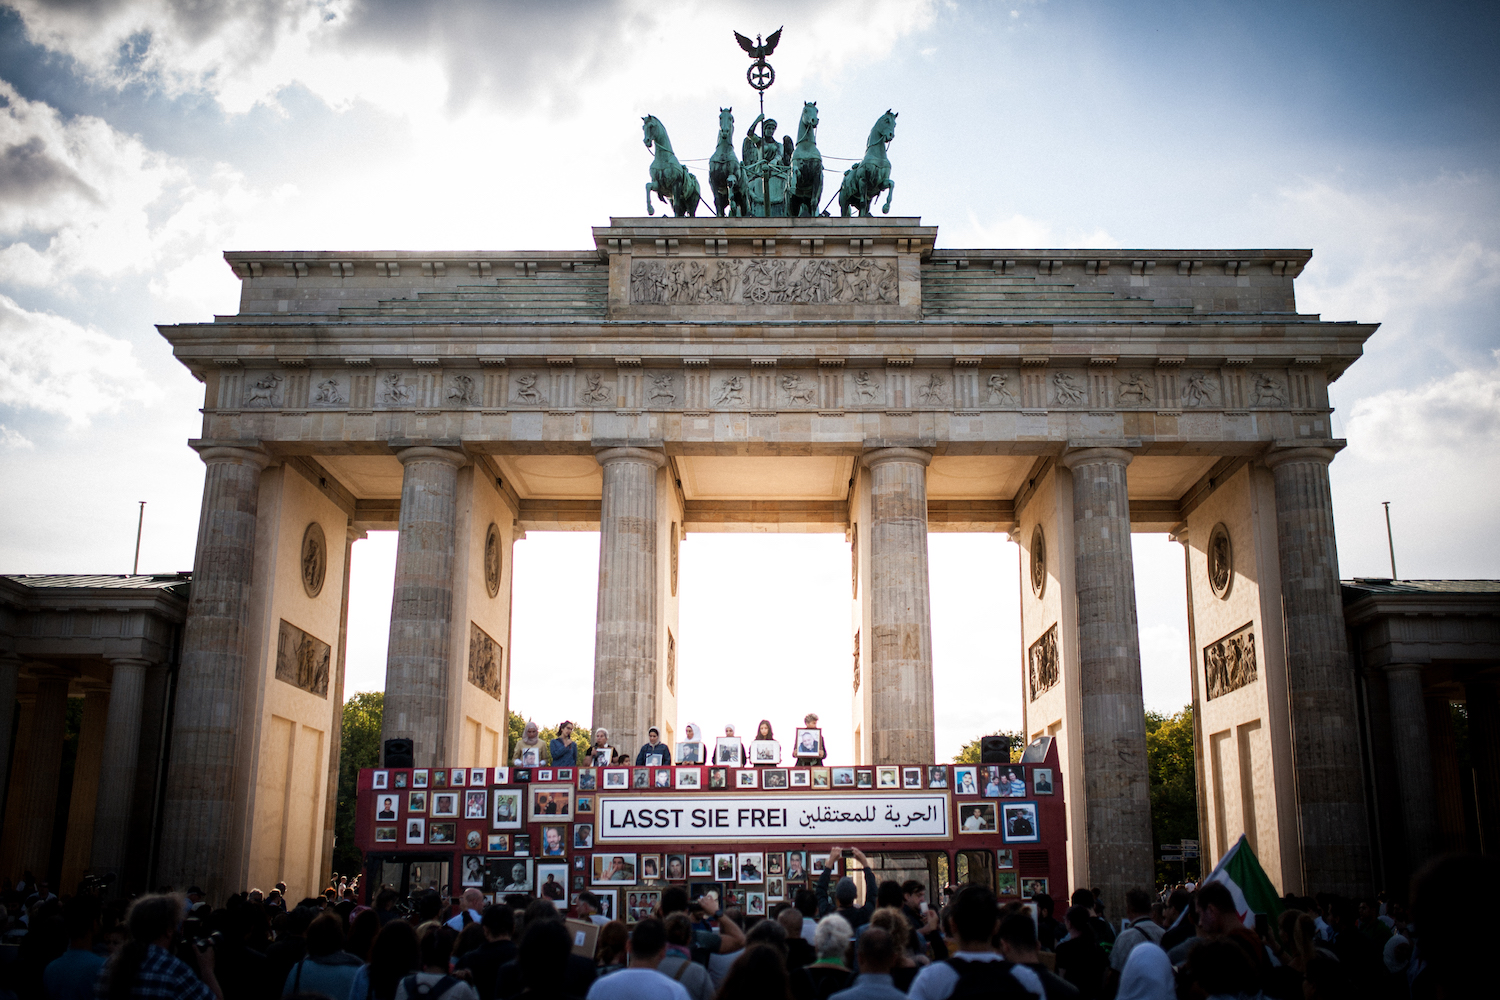 Germany.  The Syrian regime is responsible for the forced disappearance of approx. 85,000 people. In Berlin, relatives of the victims demand their release.